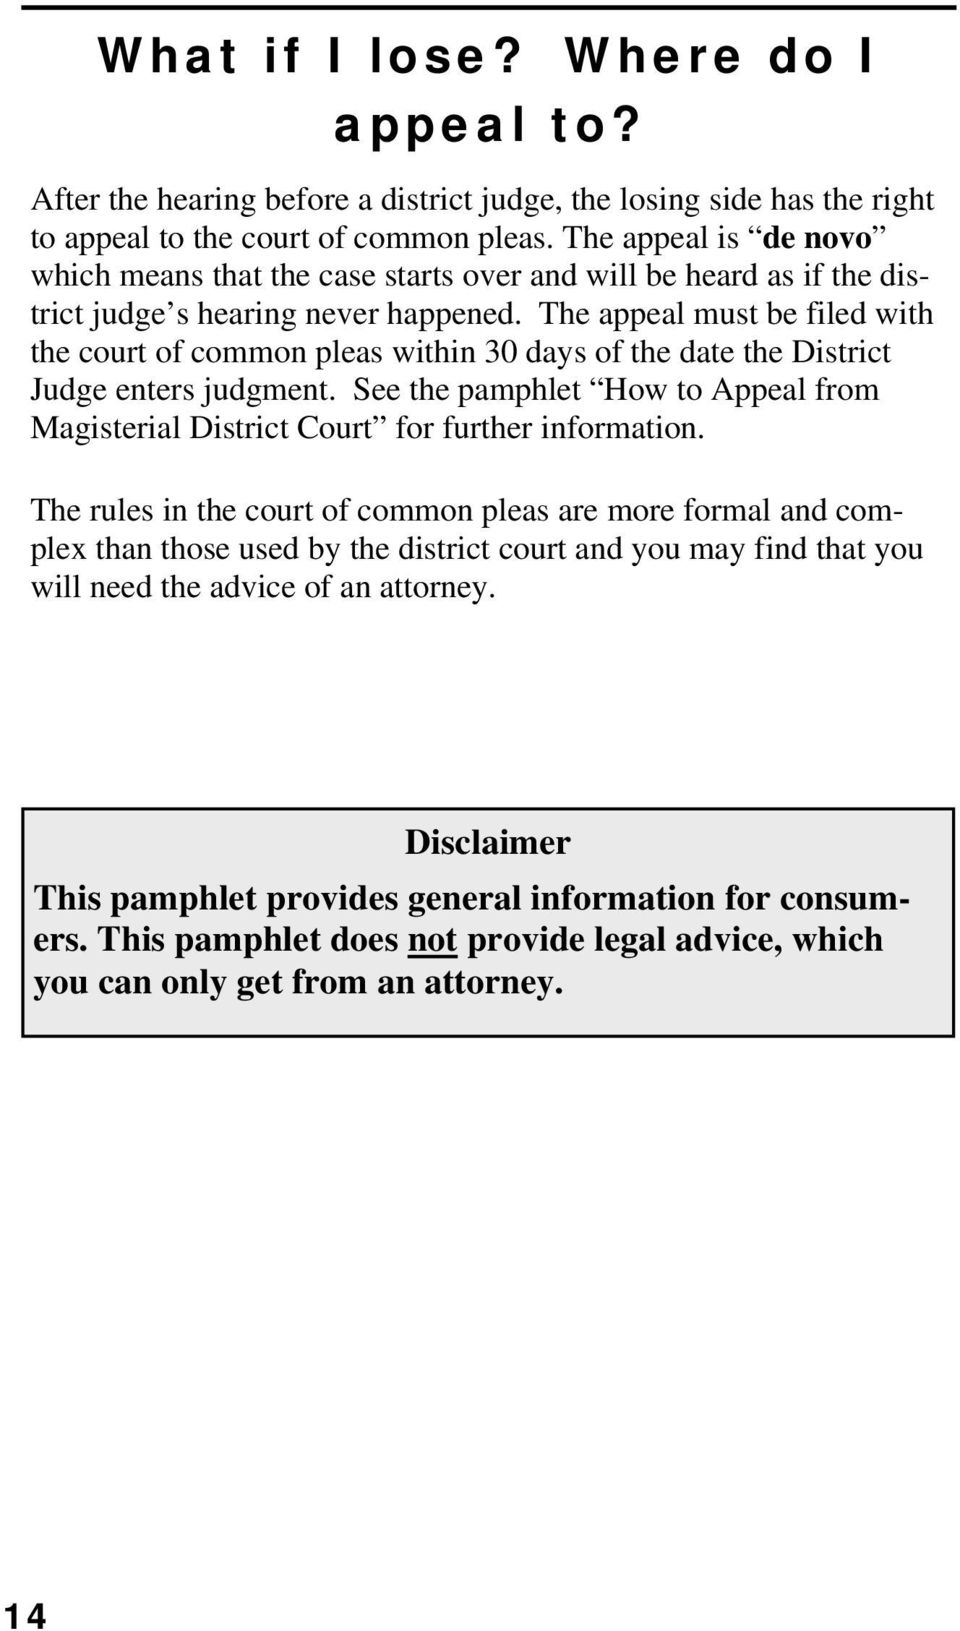 The appeal must be filed with the court of common pleas within 30 days of the date the District Judge enters judgment.